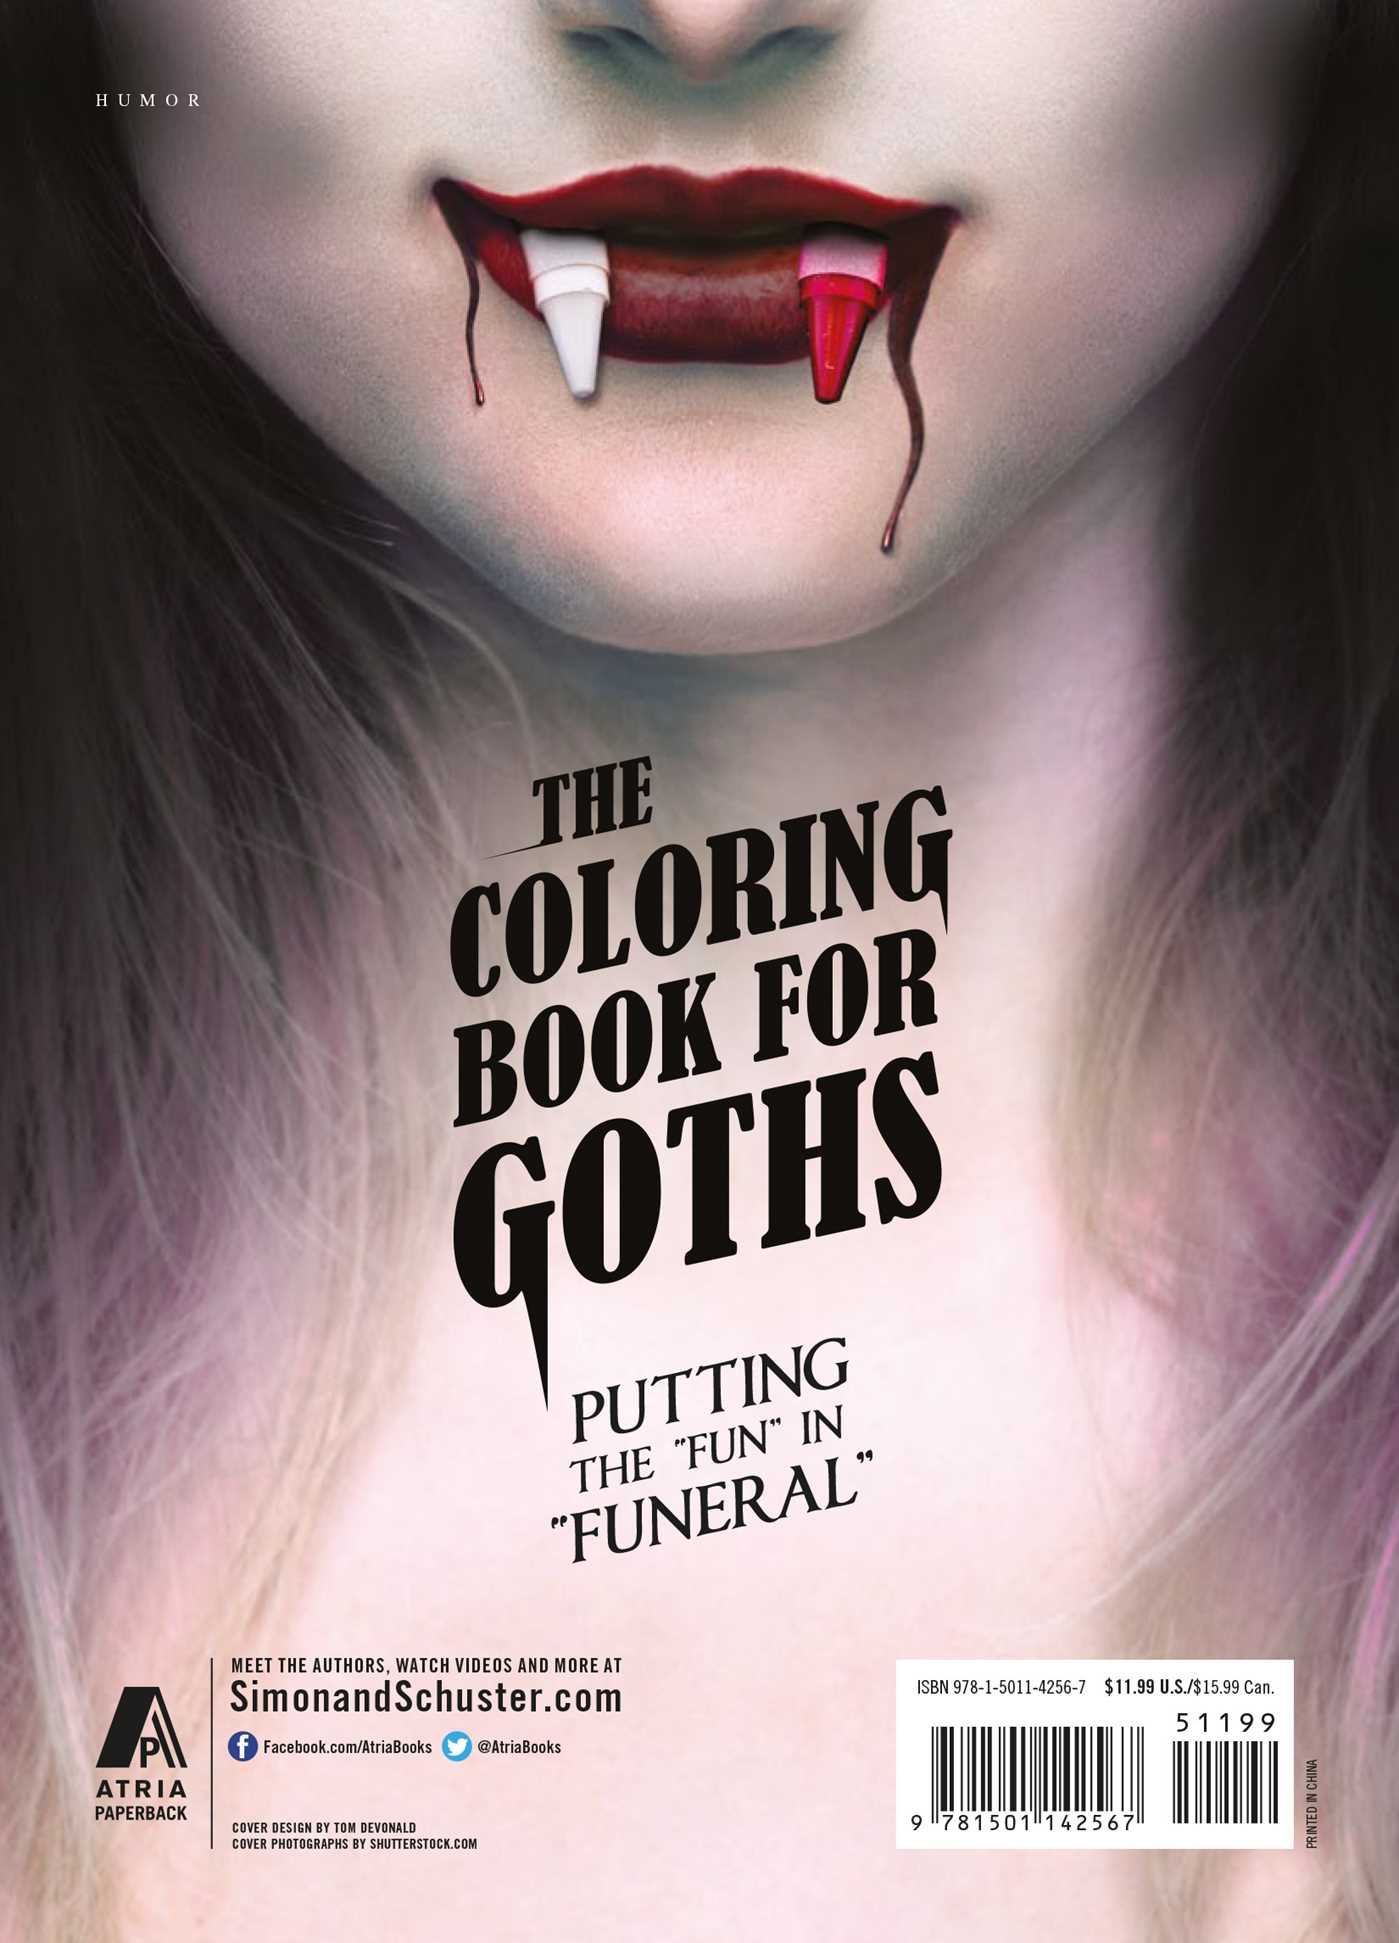 the coloring book for goths 9781501142567 hr back - The Coloring Pages